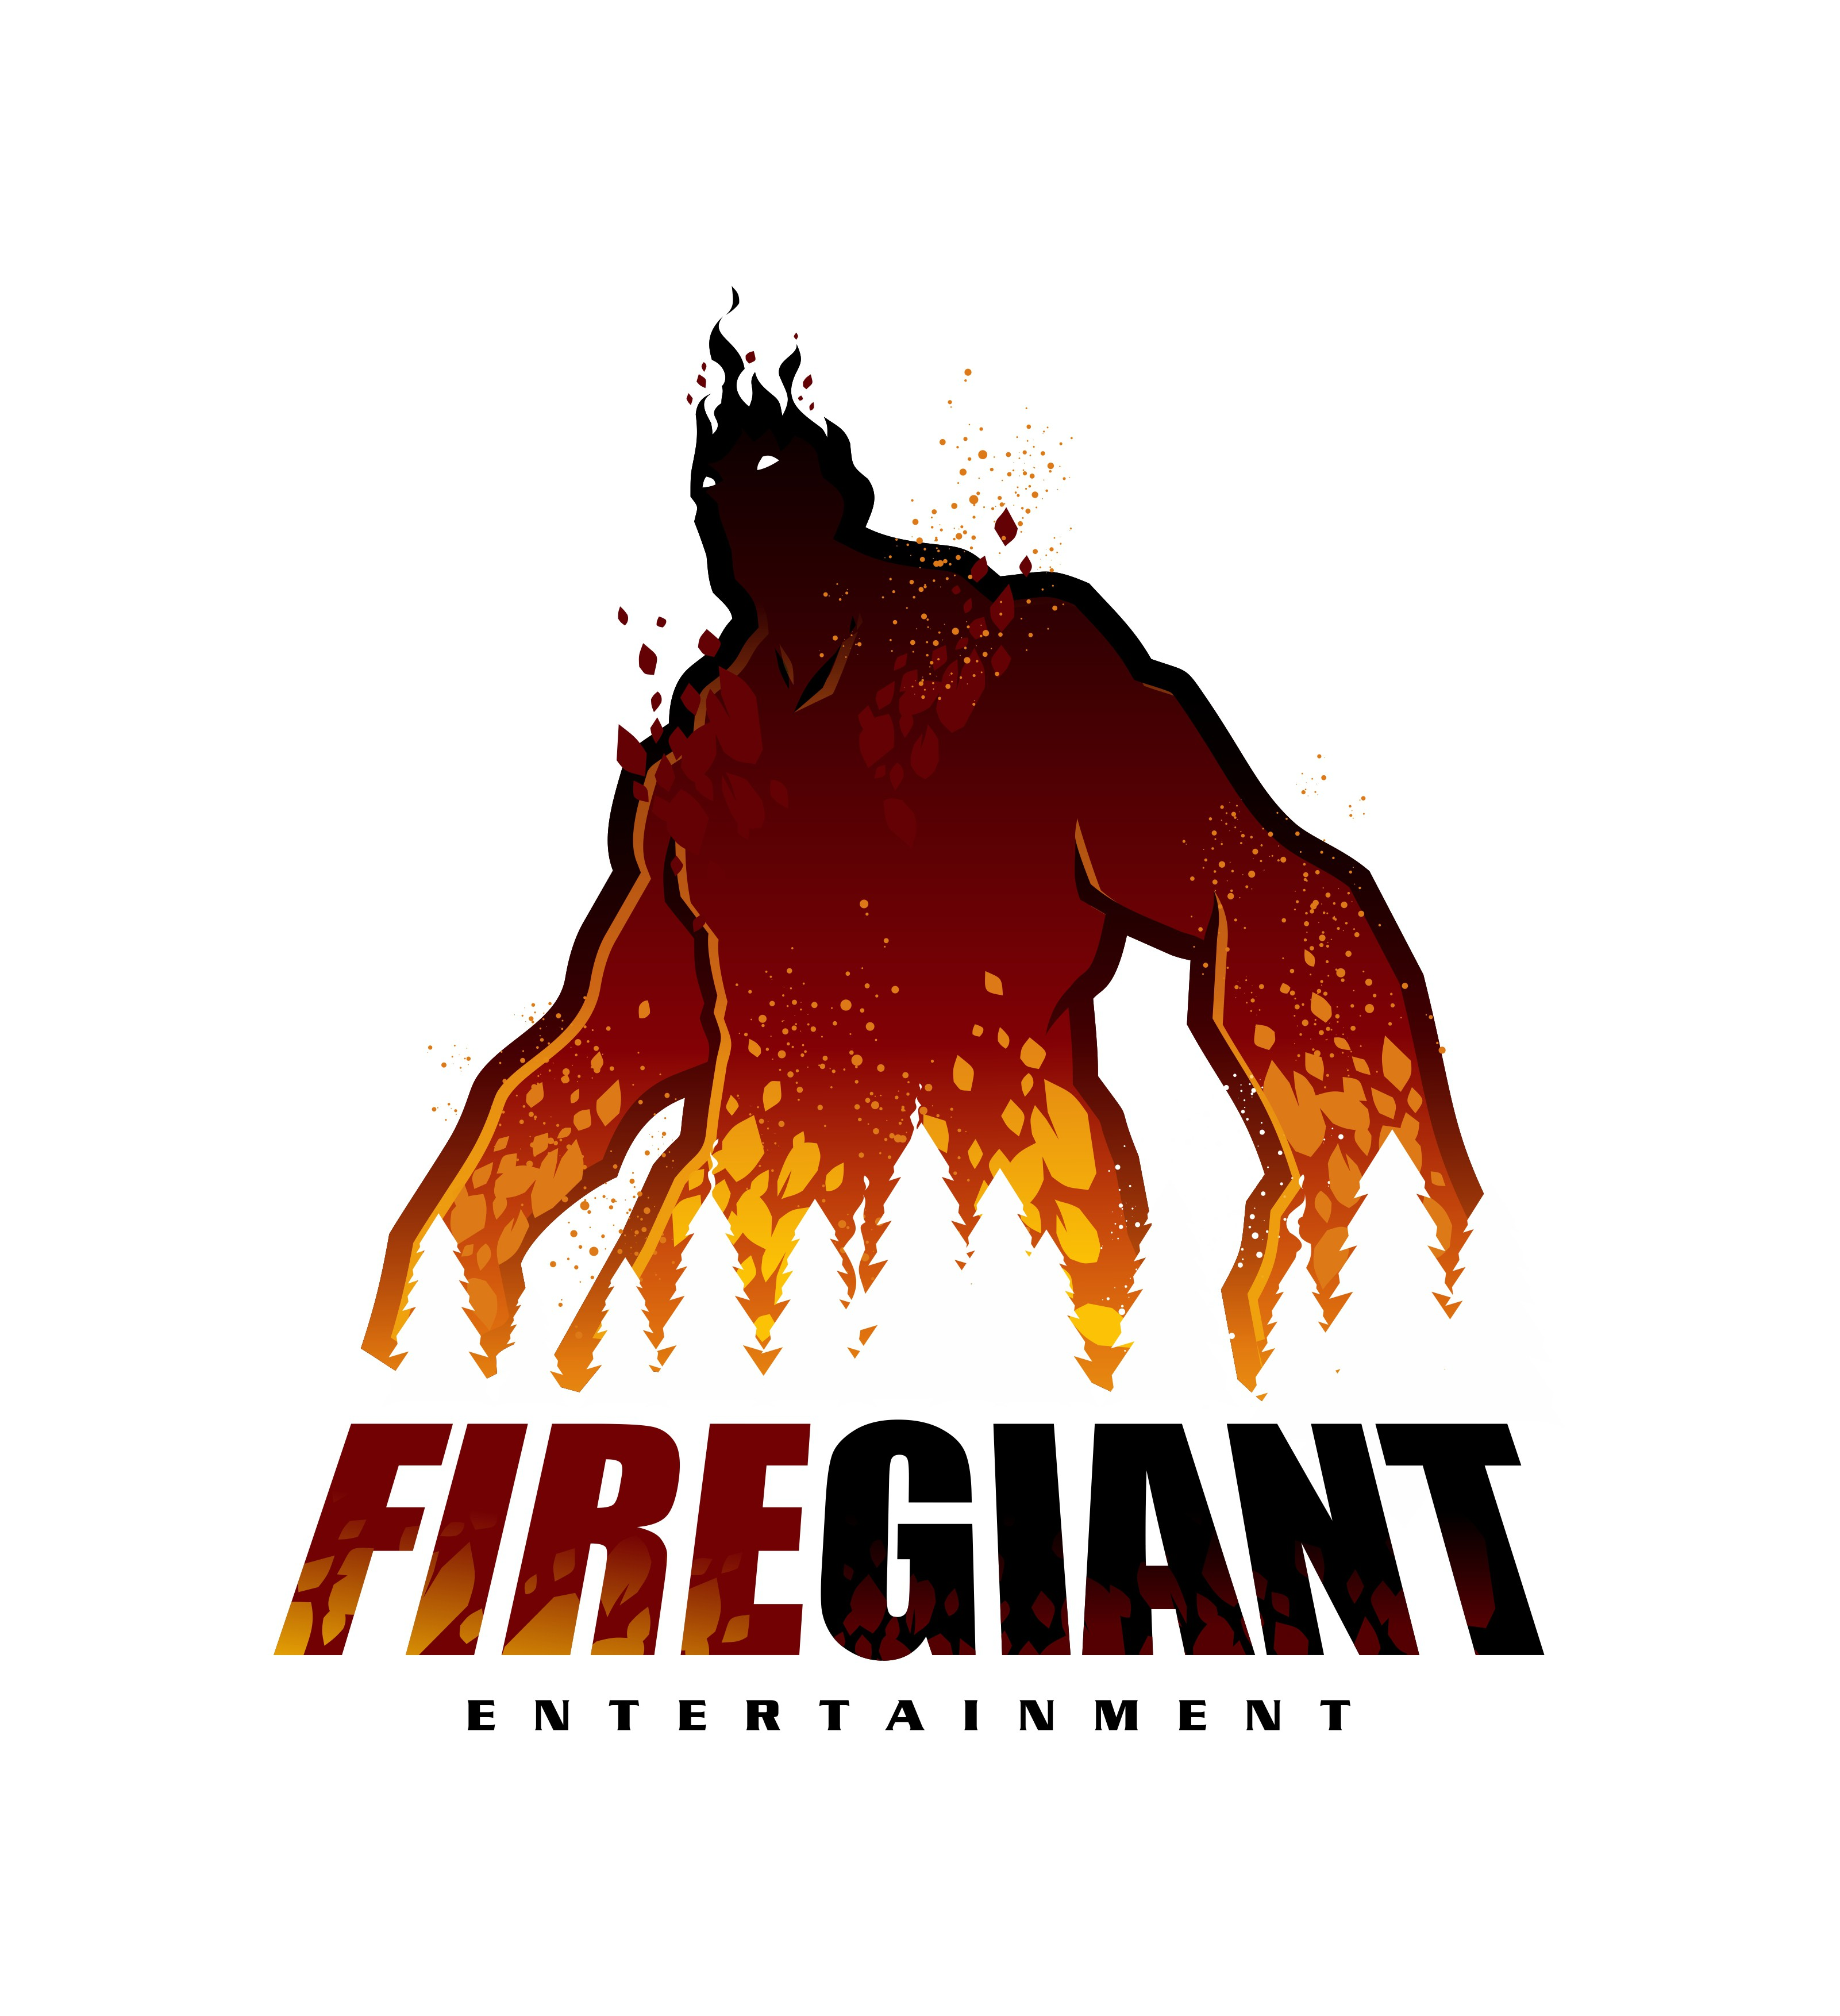 Compelling and exciting logo requested for an independent video game company